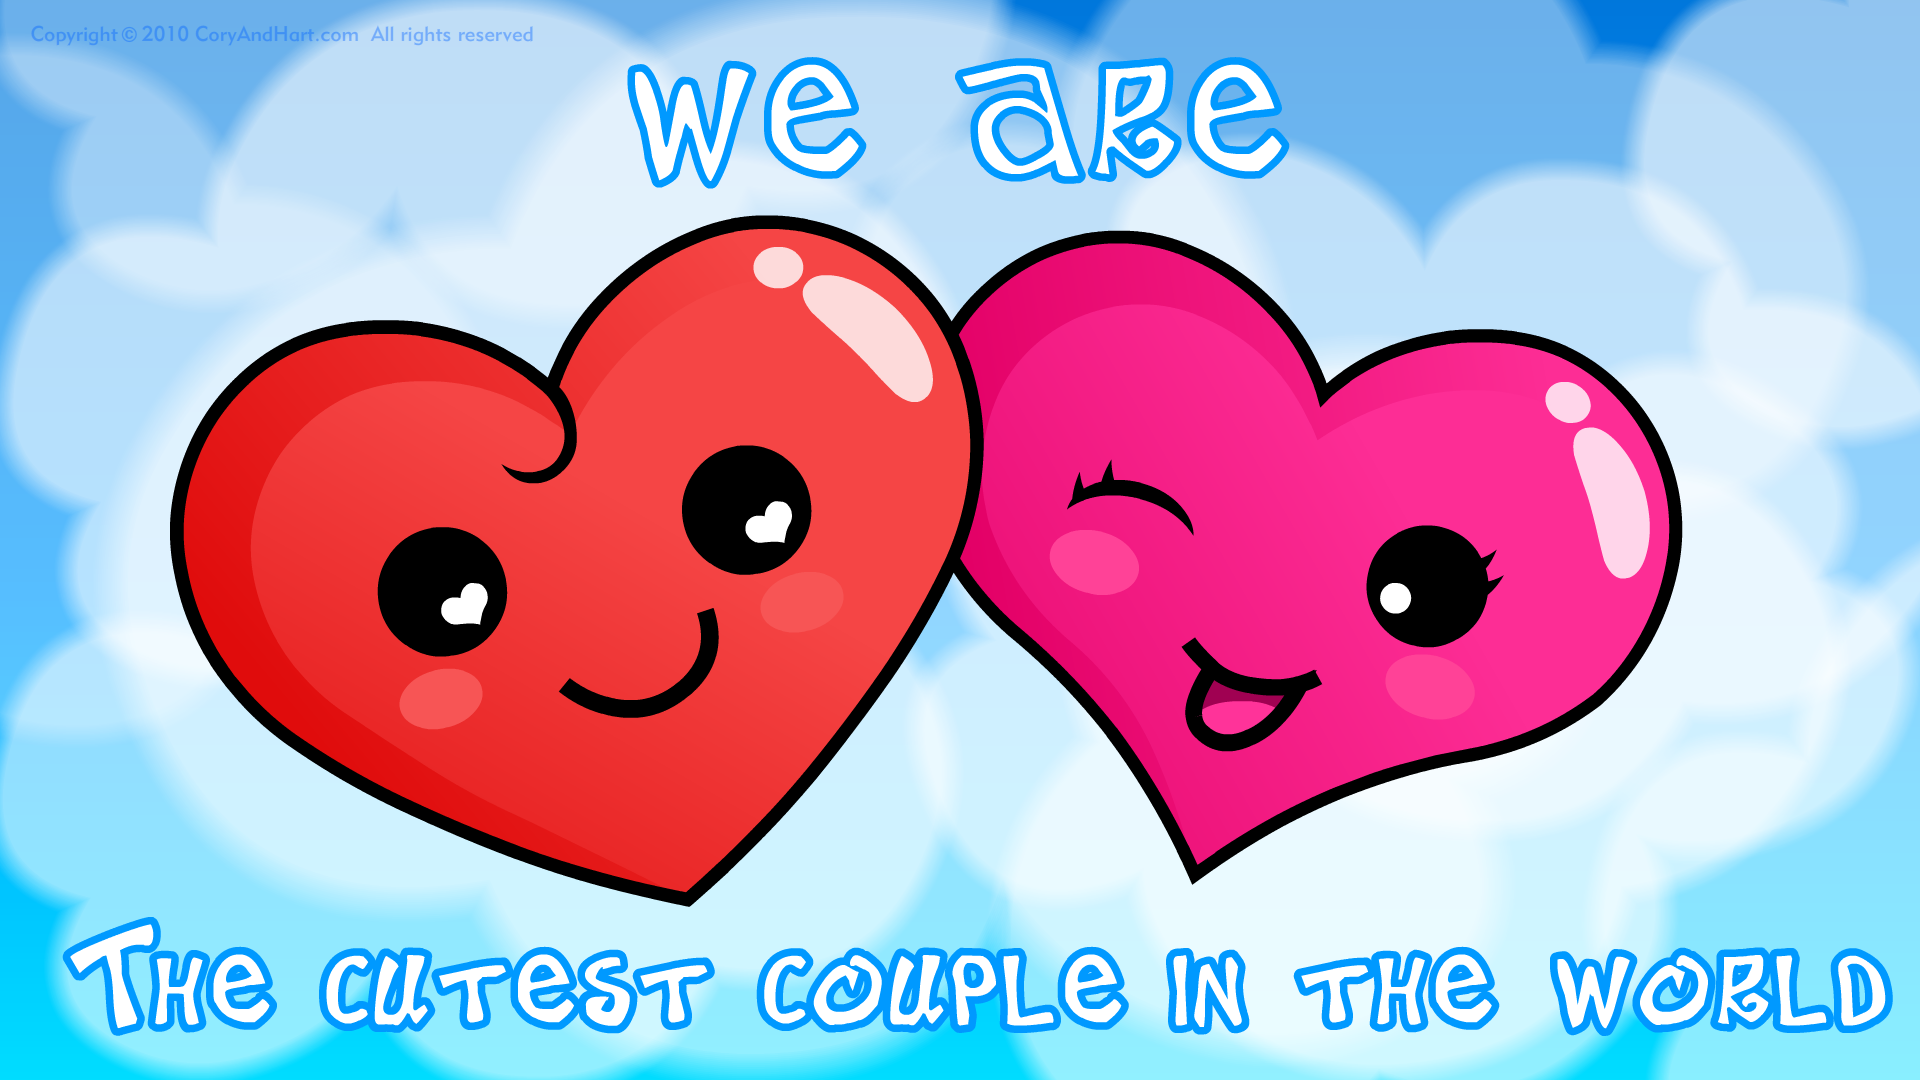 we_are_the_cutest_couple_in_the_world-1920x1080_full_hd